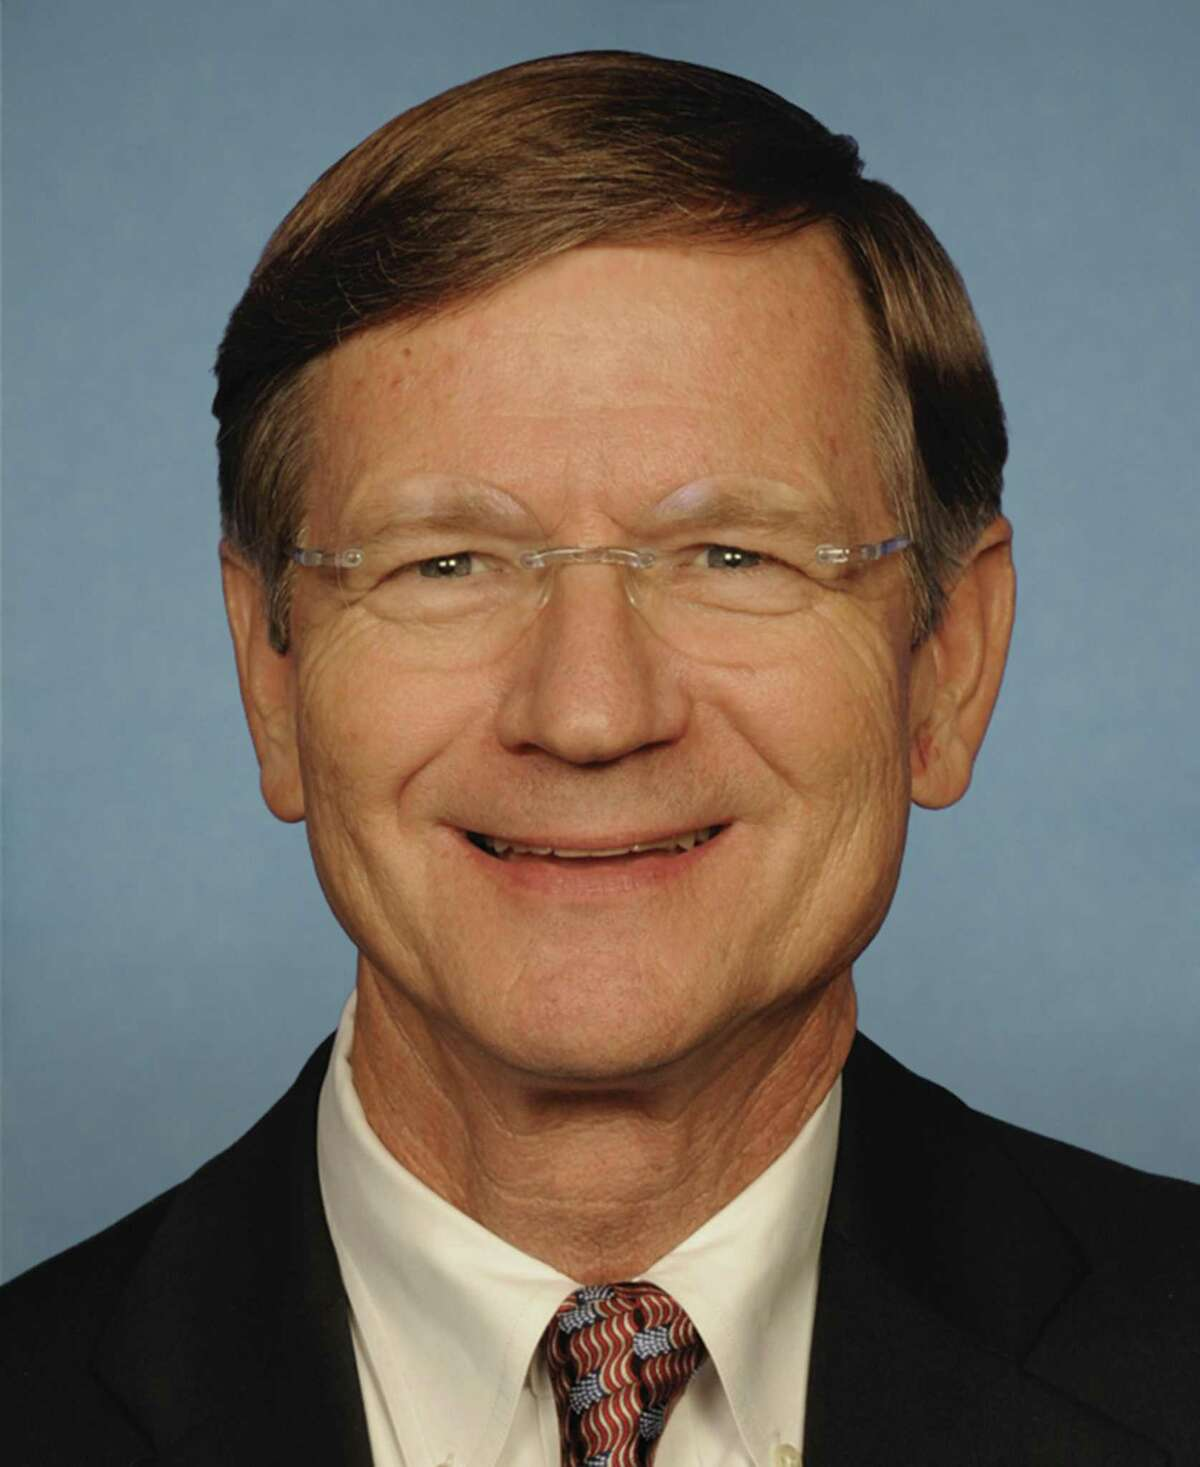 At least 10 candidates already are vying for Congressional District 21, from which longtime U.S. Rep. Lamar Smith, R-San Antonio, has announced his retirement.